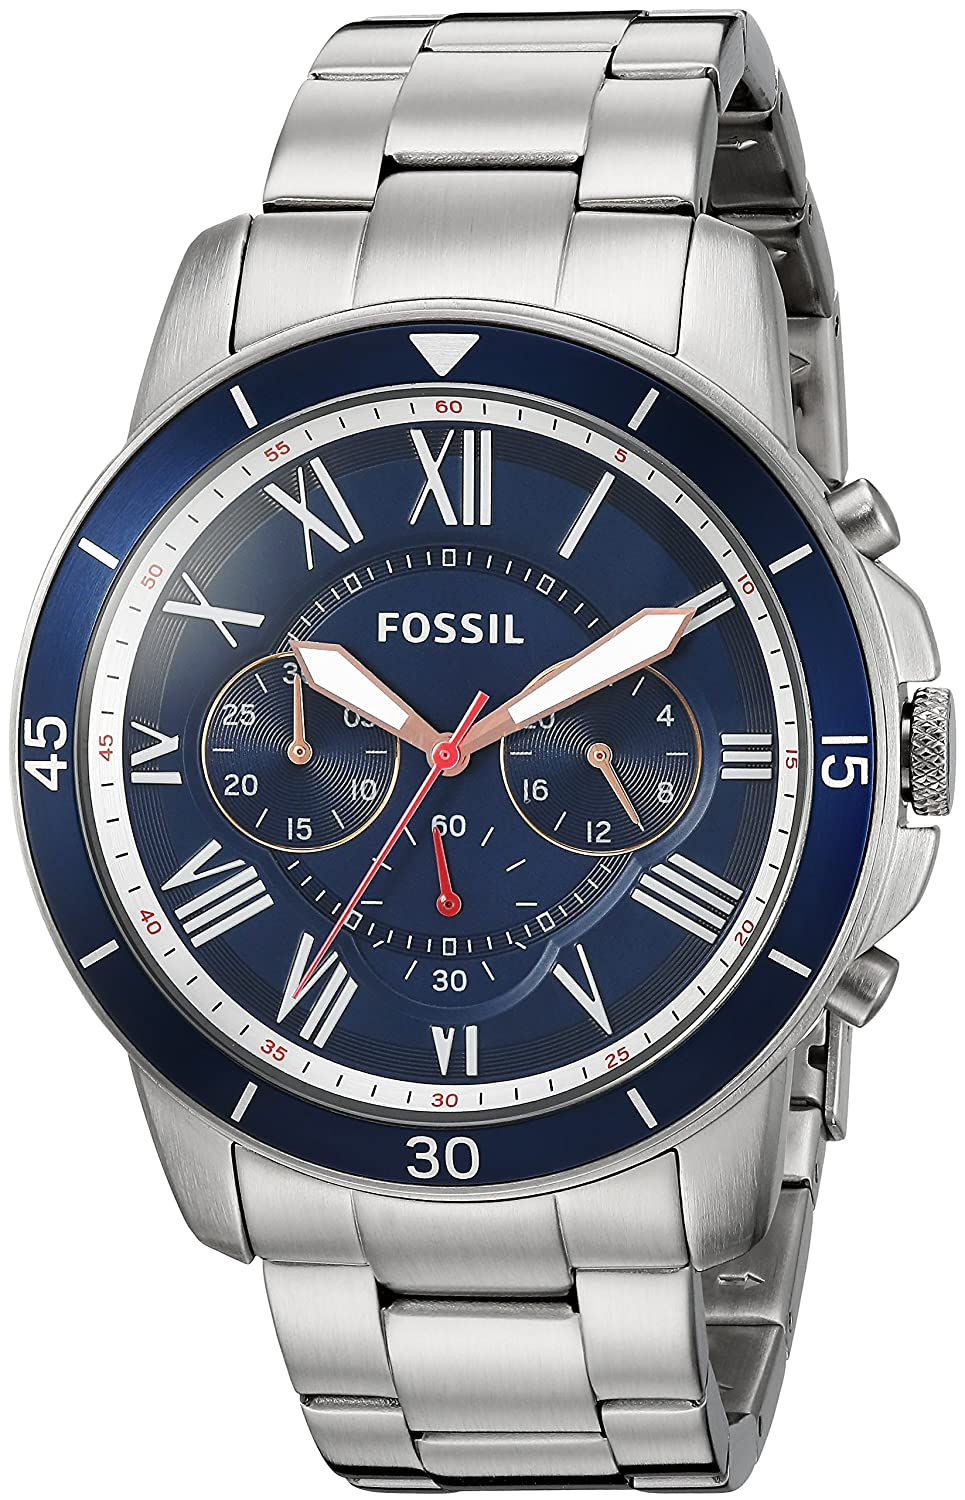 Buy Fossil Chronograph Blue Dial Mens Watch Fs5238 Online At Low Fs4736 Prices In India